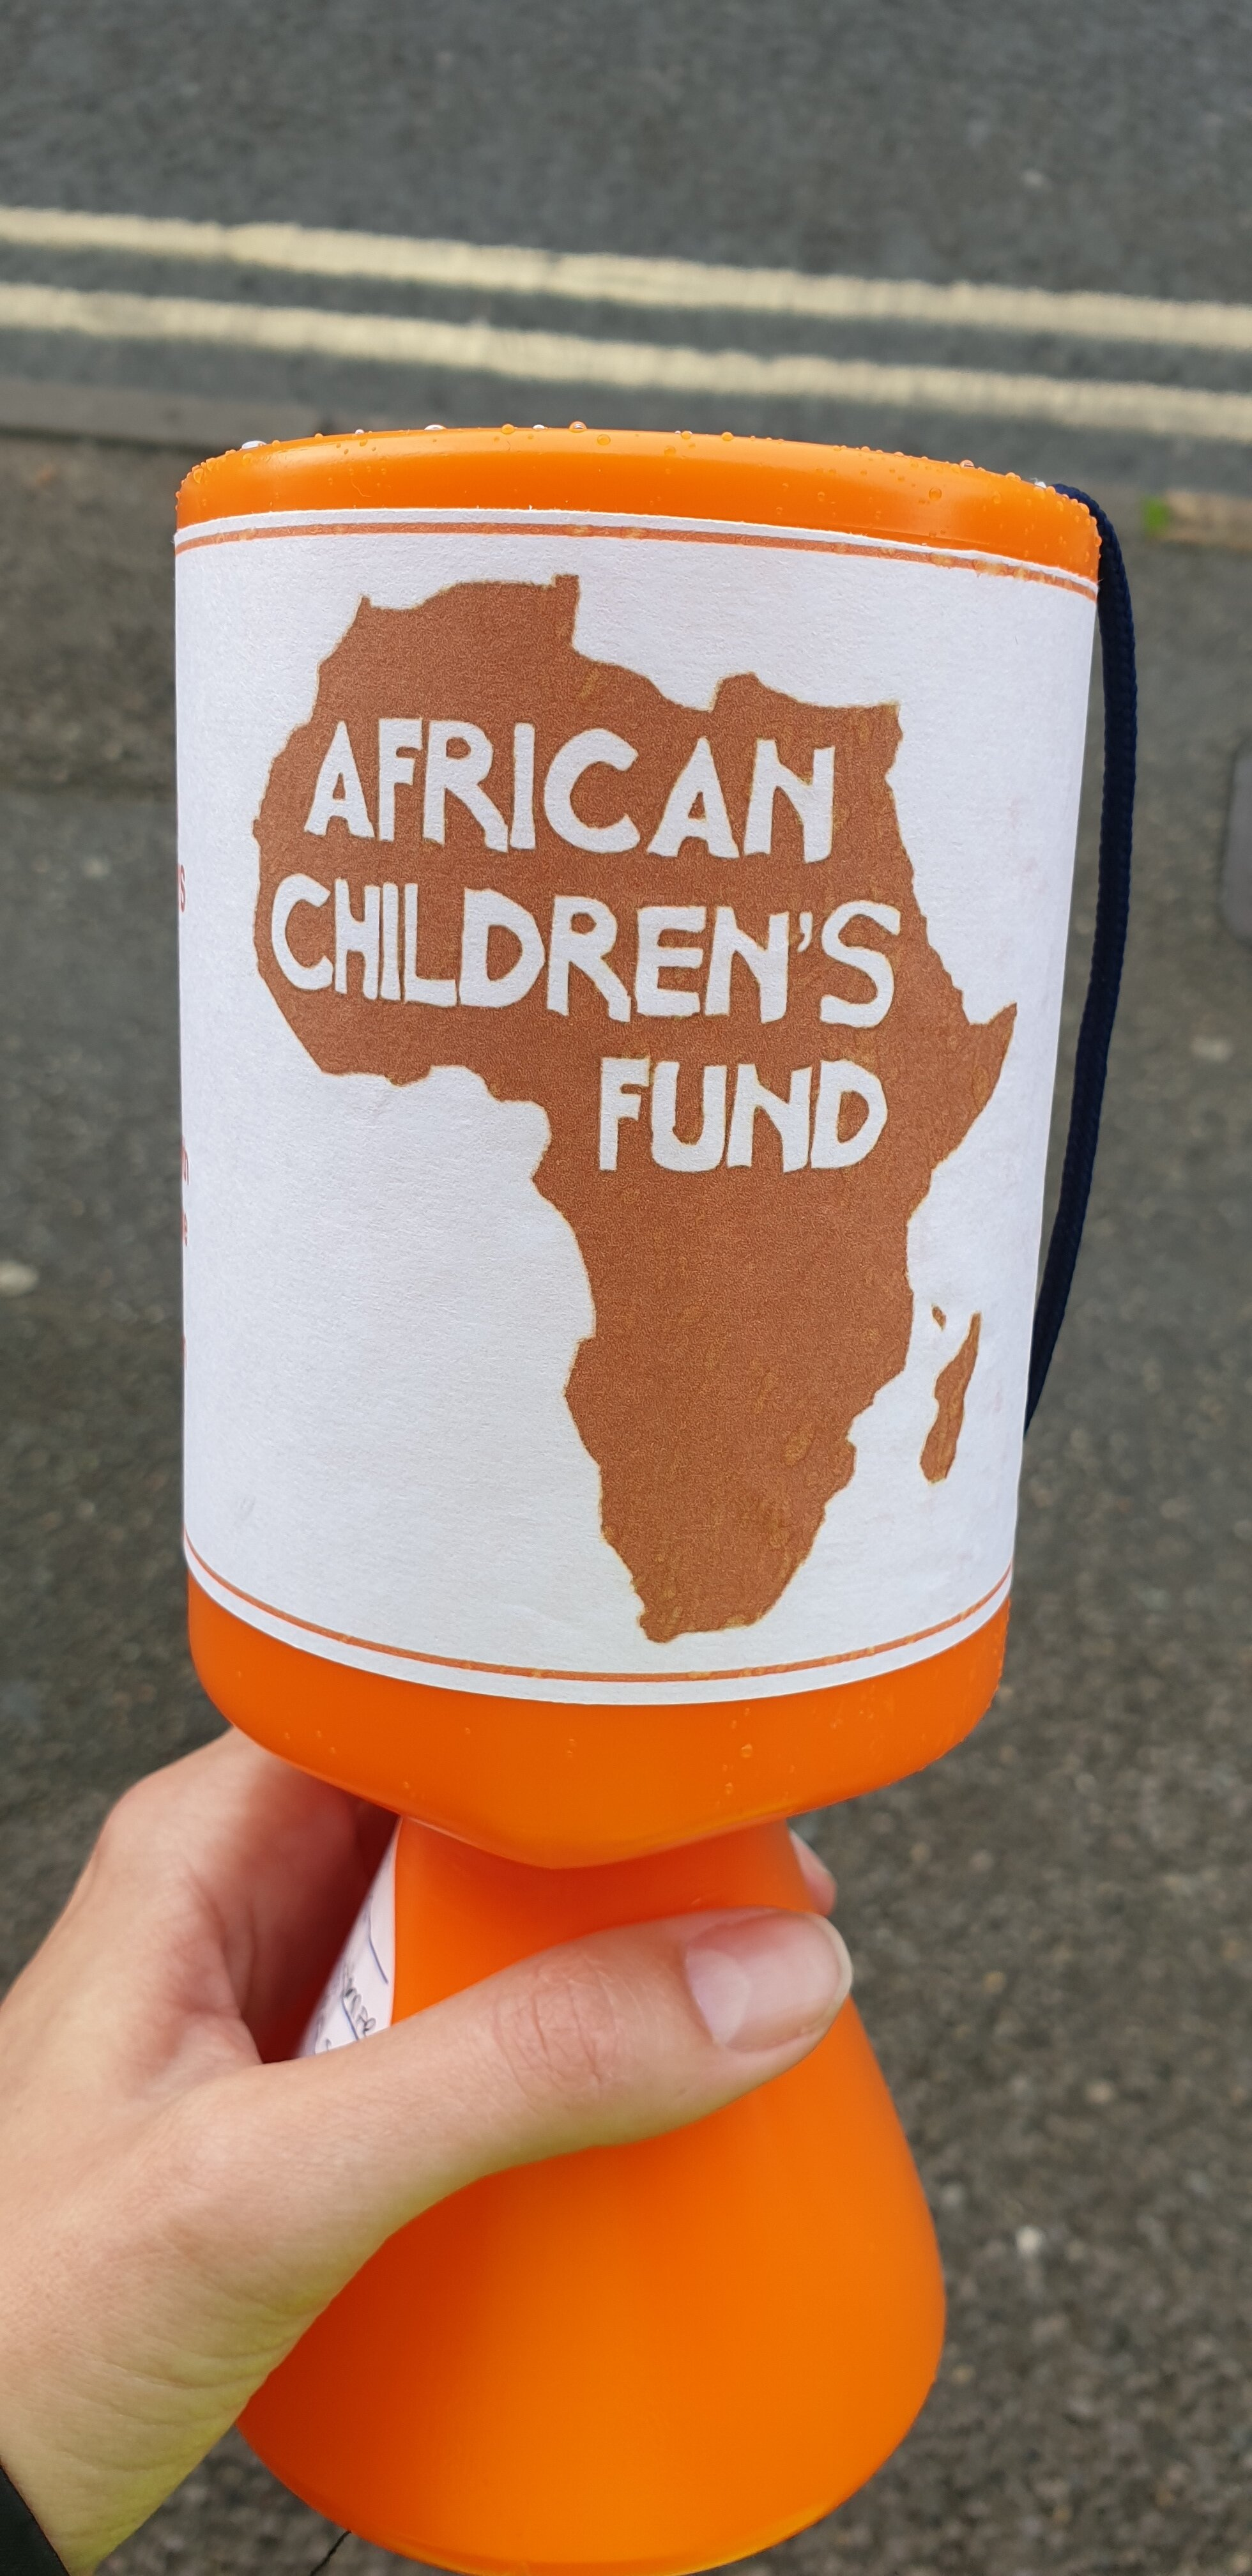 Orange collection box with African Children's Fund label on!